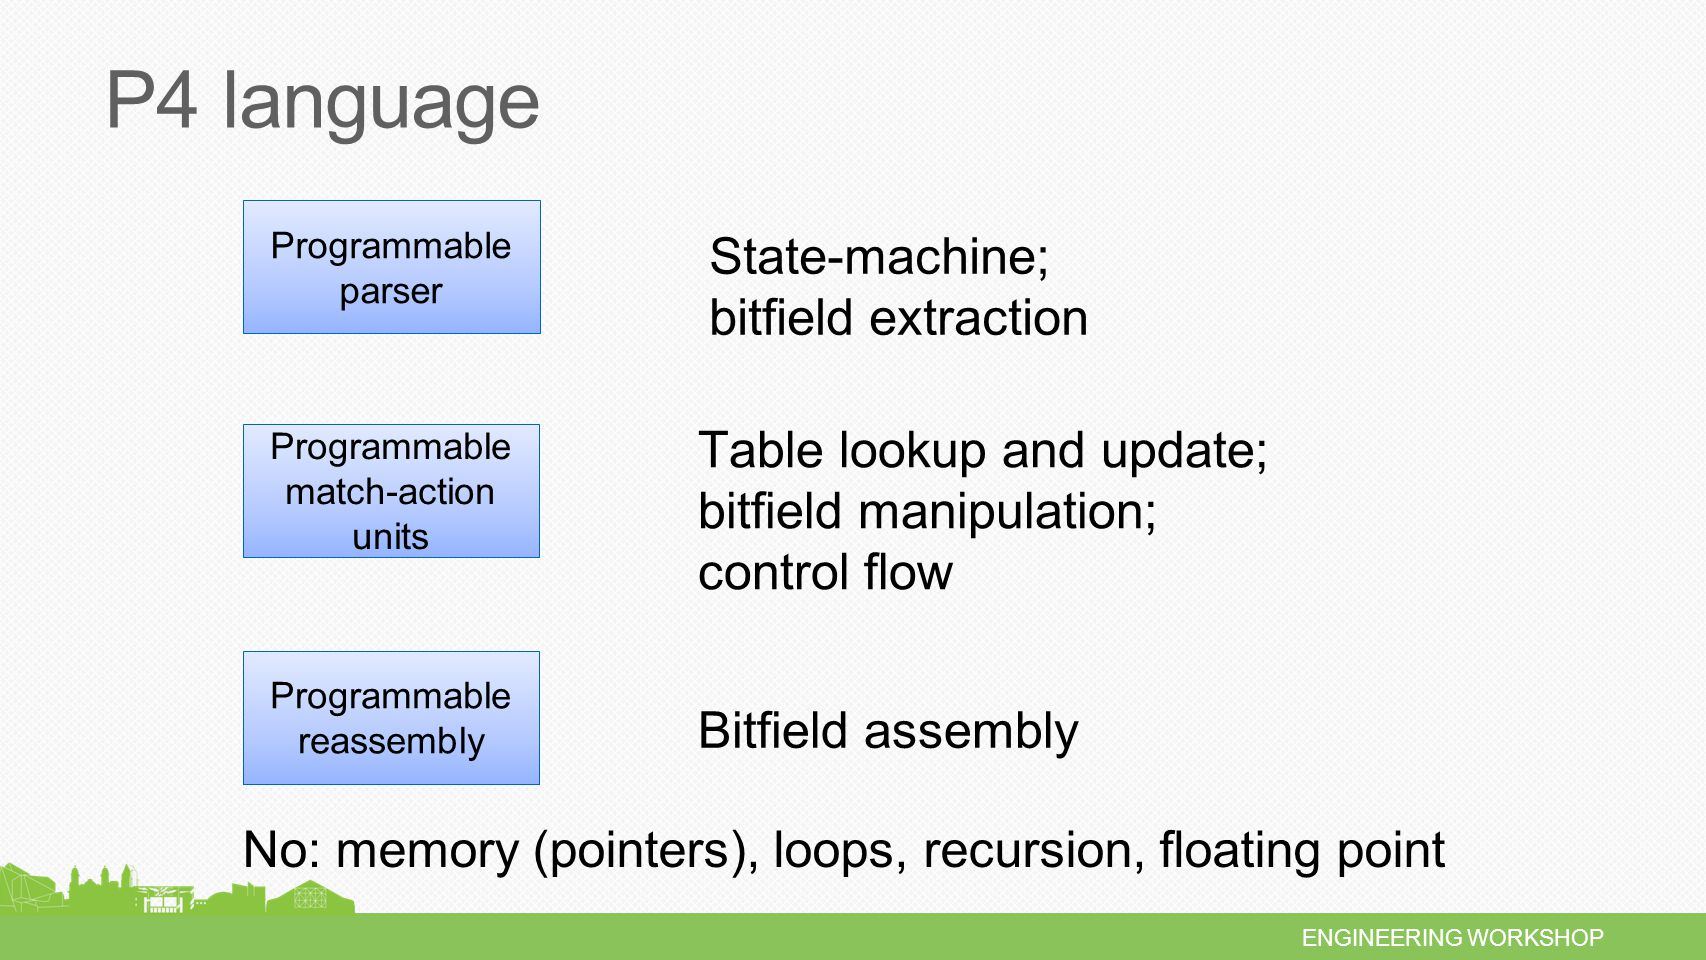 ENGINEERING WORKSHOP P4 language Programmable parser Programmable match-action units Programmable reassembly State-machine; bitfield extraction Table lookup and update; bitfield manipulation; control flow Bitfield assembly No: memory (pointers), loops, recursion, floating point